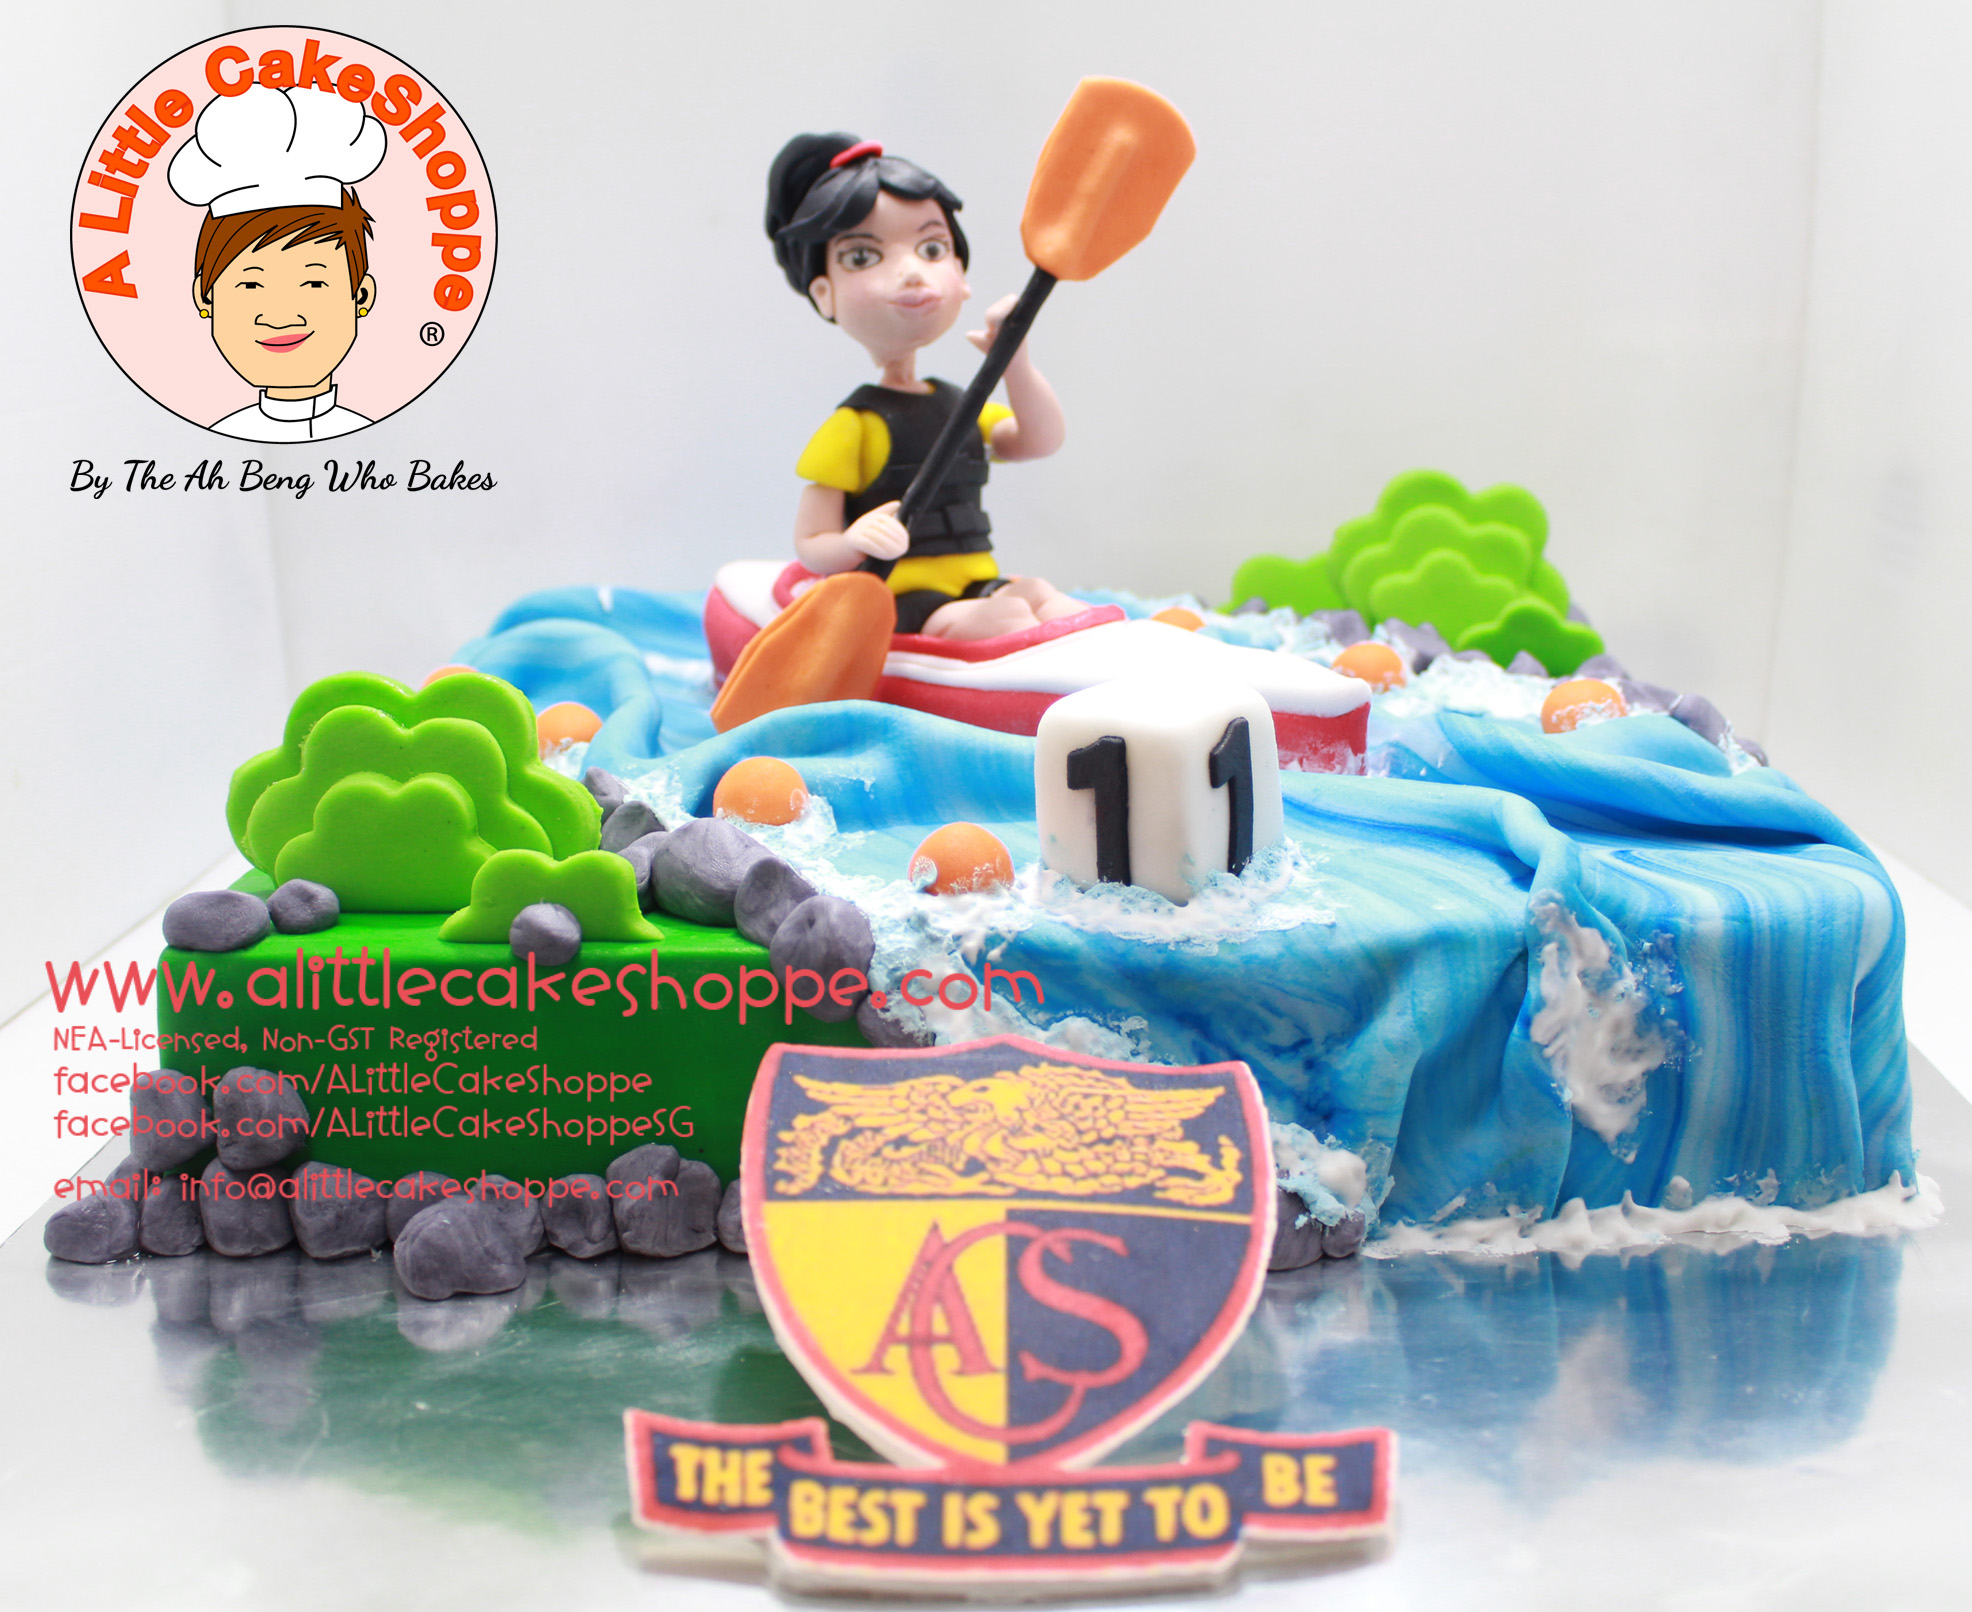 Best Customised Cake Singapore custom cake 2D 3D birthday cake cupcakes desserts wedding corporate events anniversary 1st birthday 21st birthday fondant fresh cream buttercream cakes alittlecakeshoppe a little cake shoppe compliments review singapore bakers SG cakeshop ah beng who bakes acs sports canoe